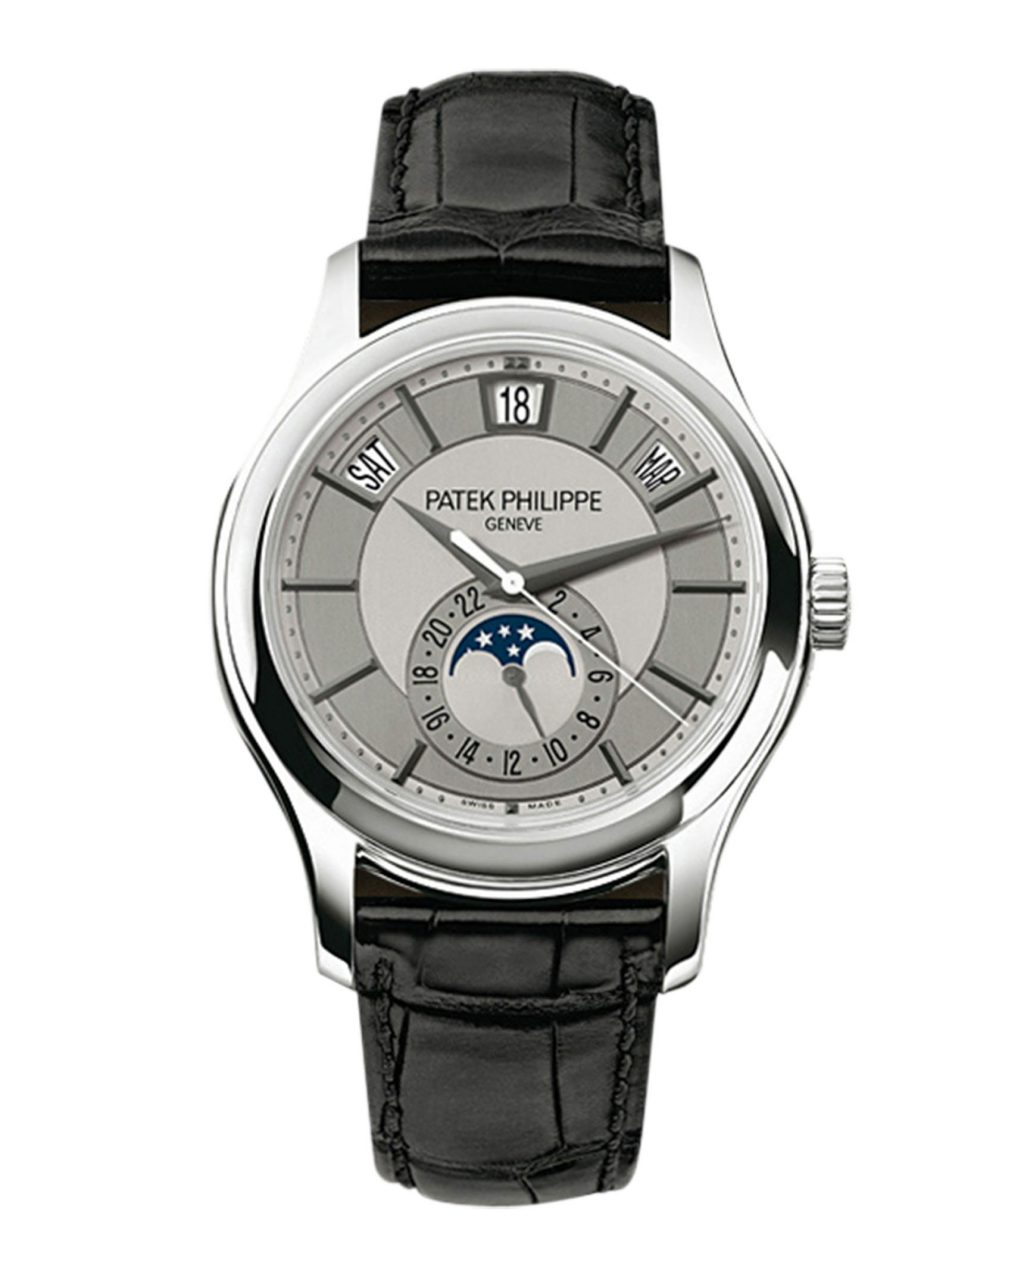 5205G-001 - White Gold - Men Complications